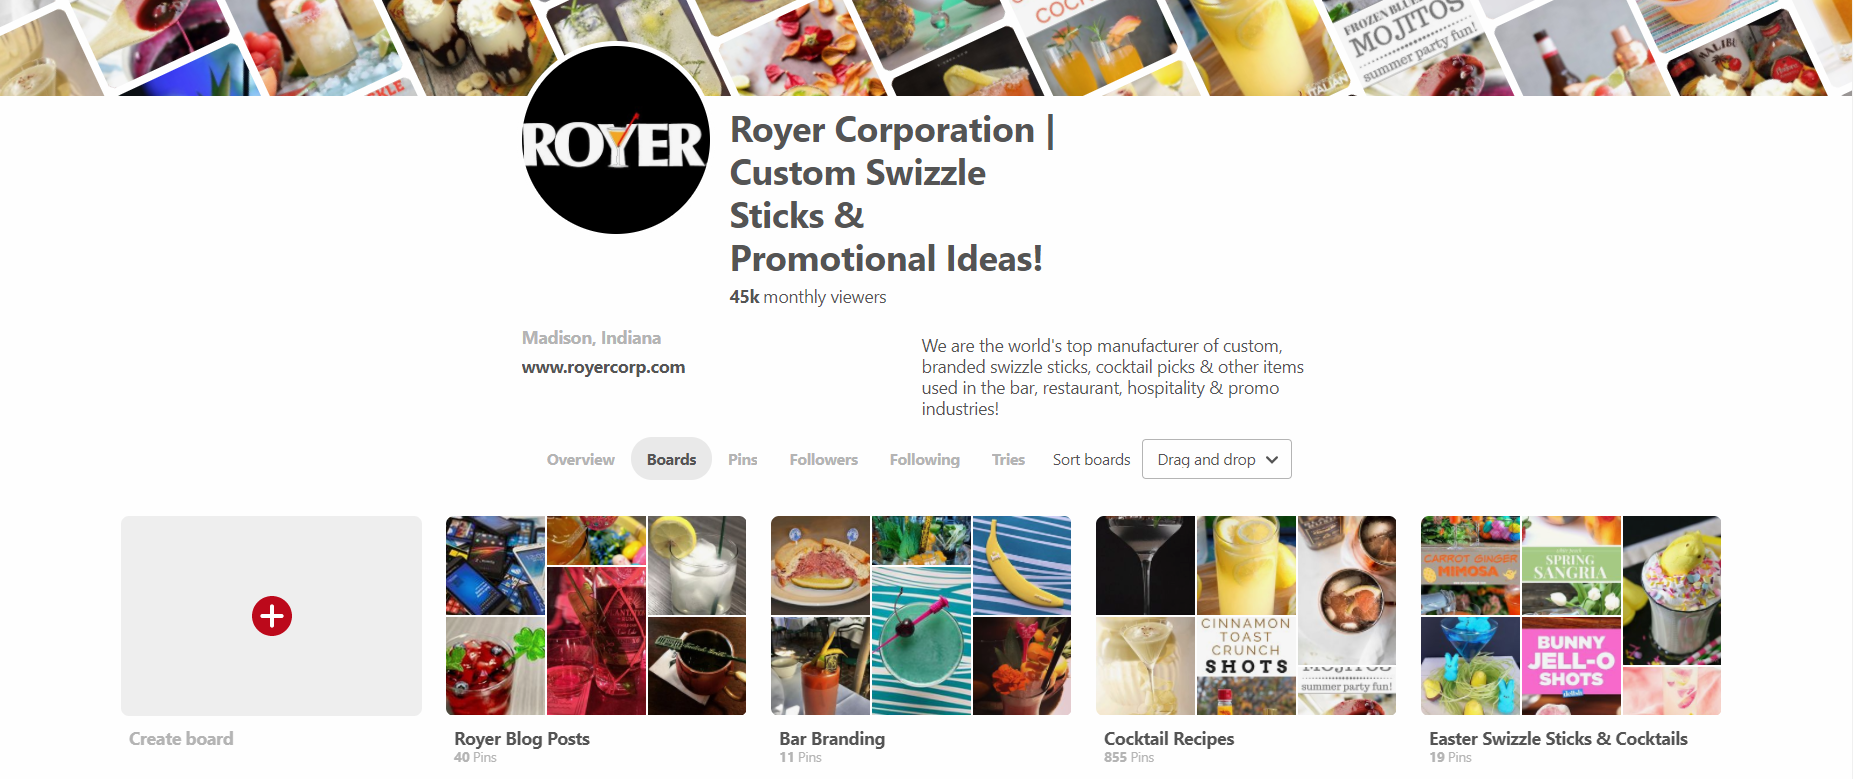 Royer is on Pinterest! Check Out Photos, Cocktail Recipes, Branding Techniques & More!